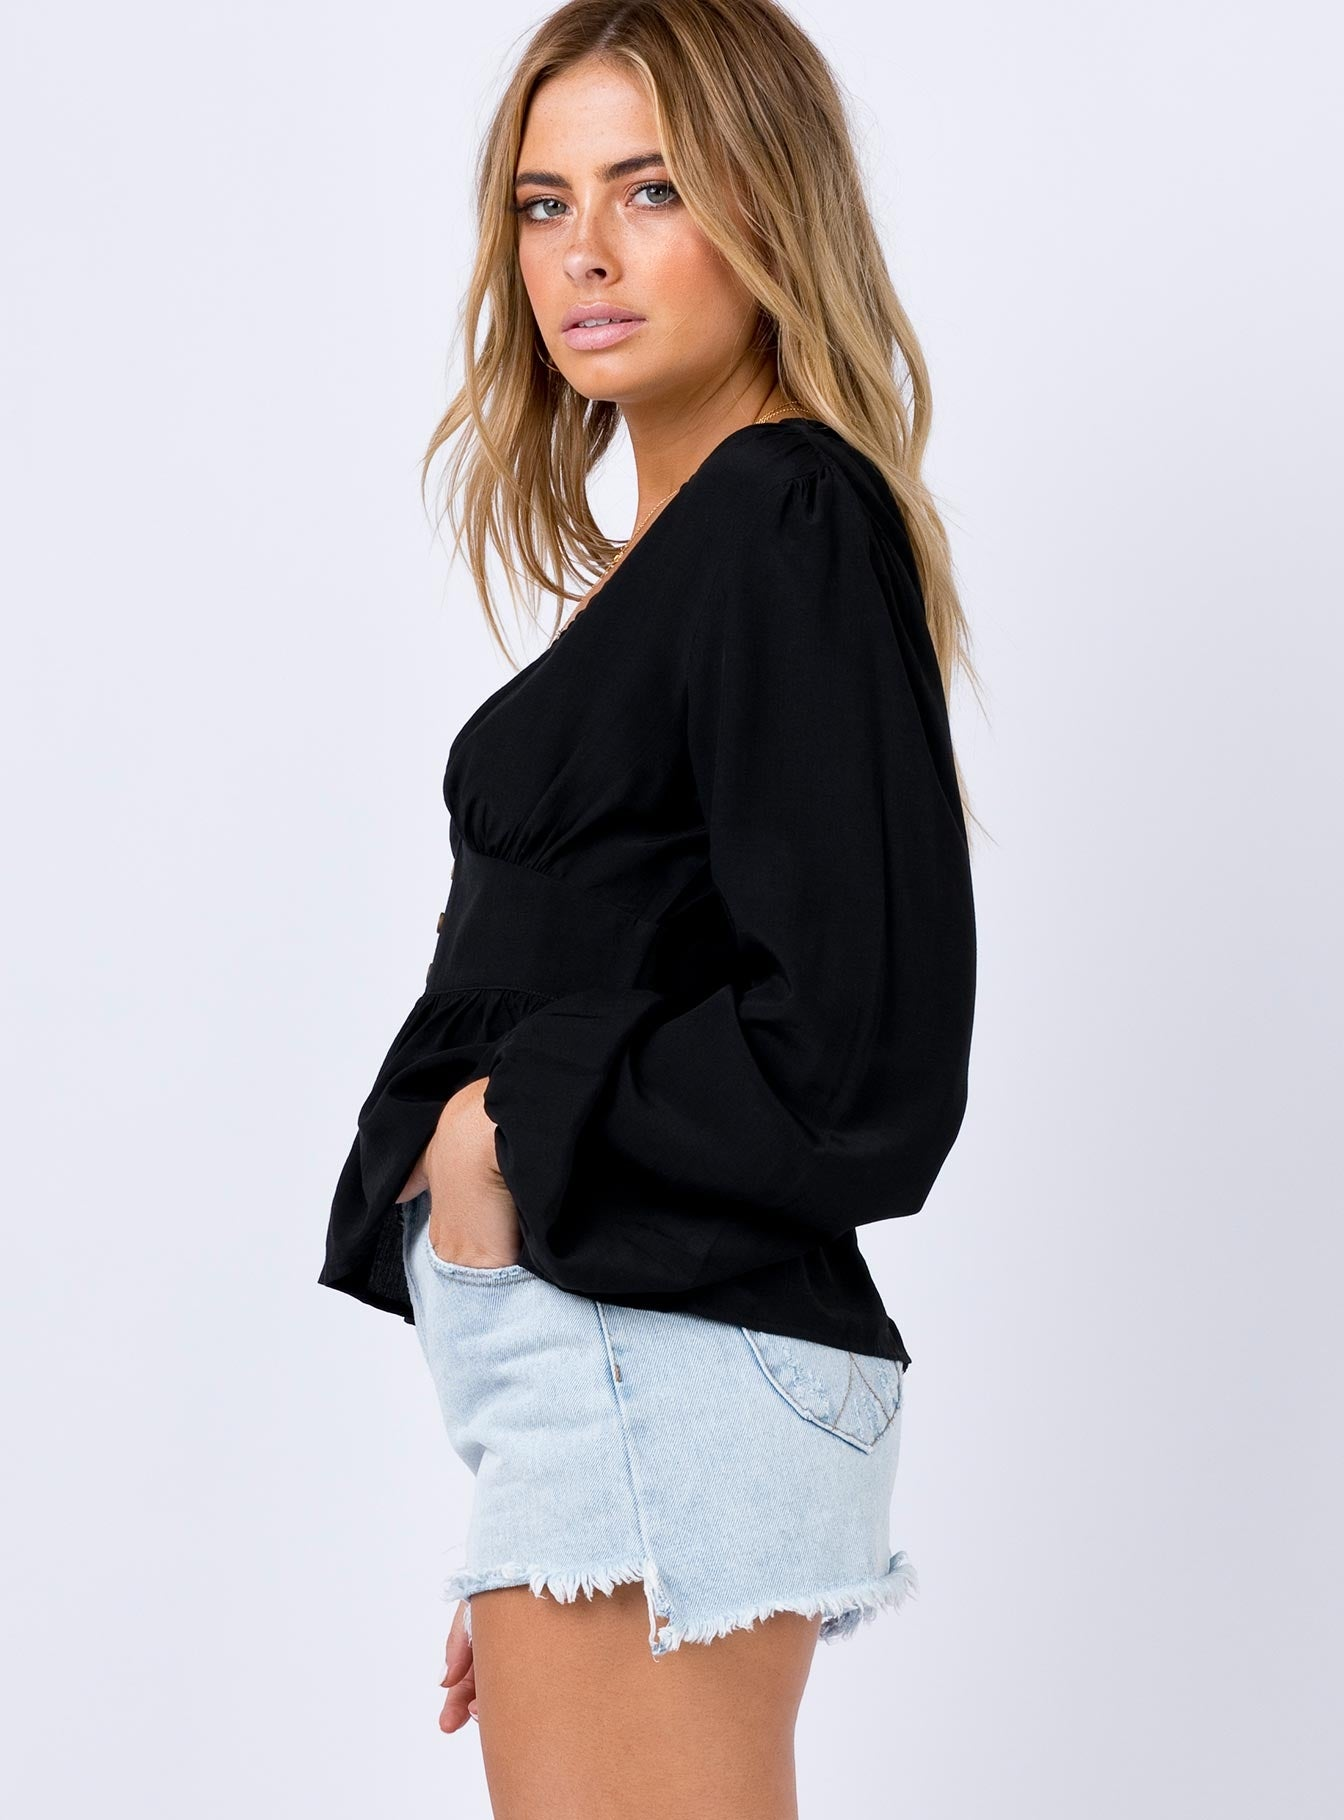 Andover Top Black